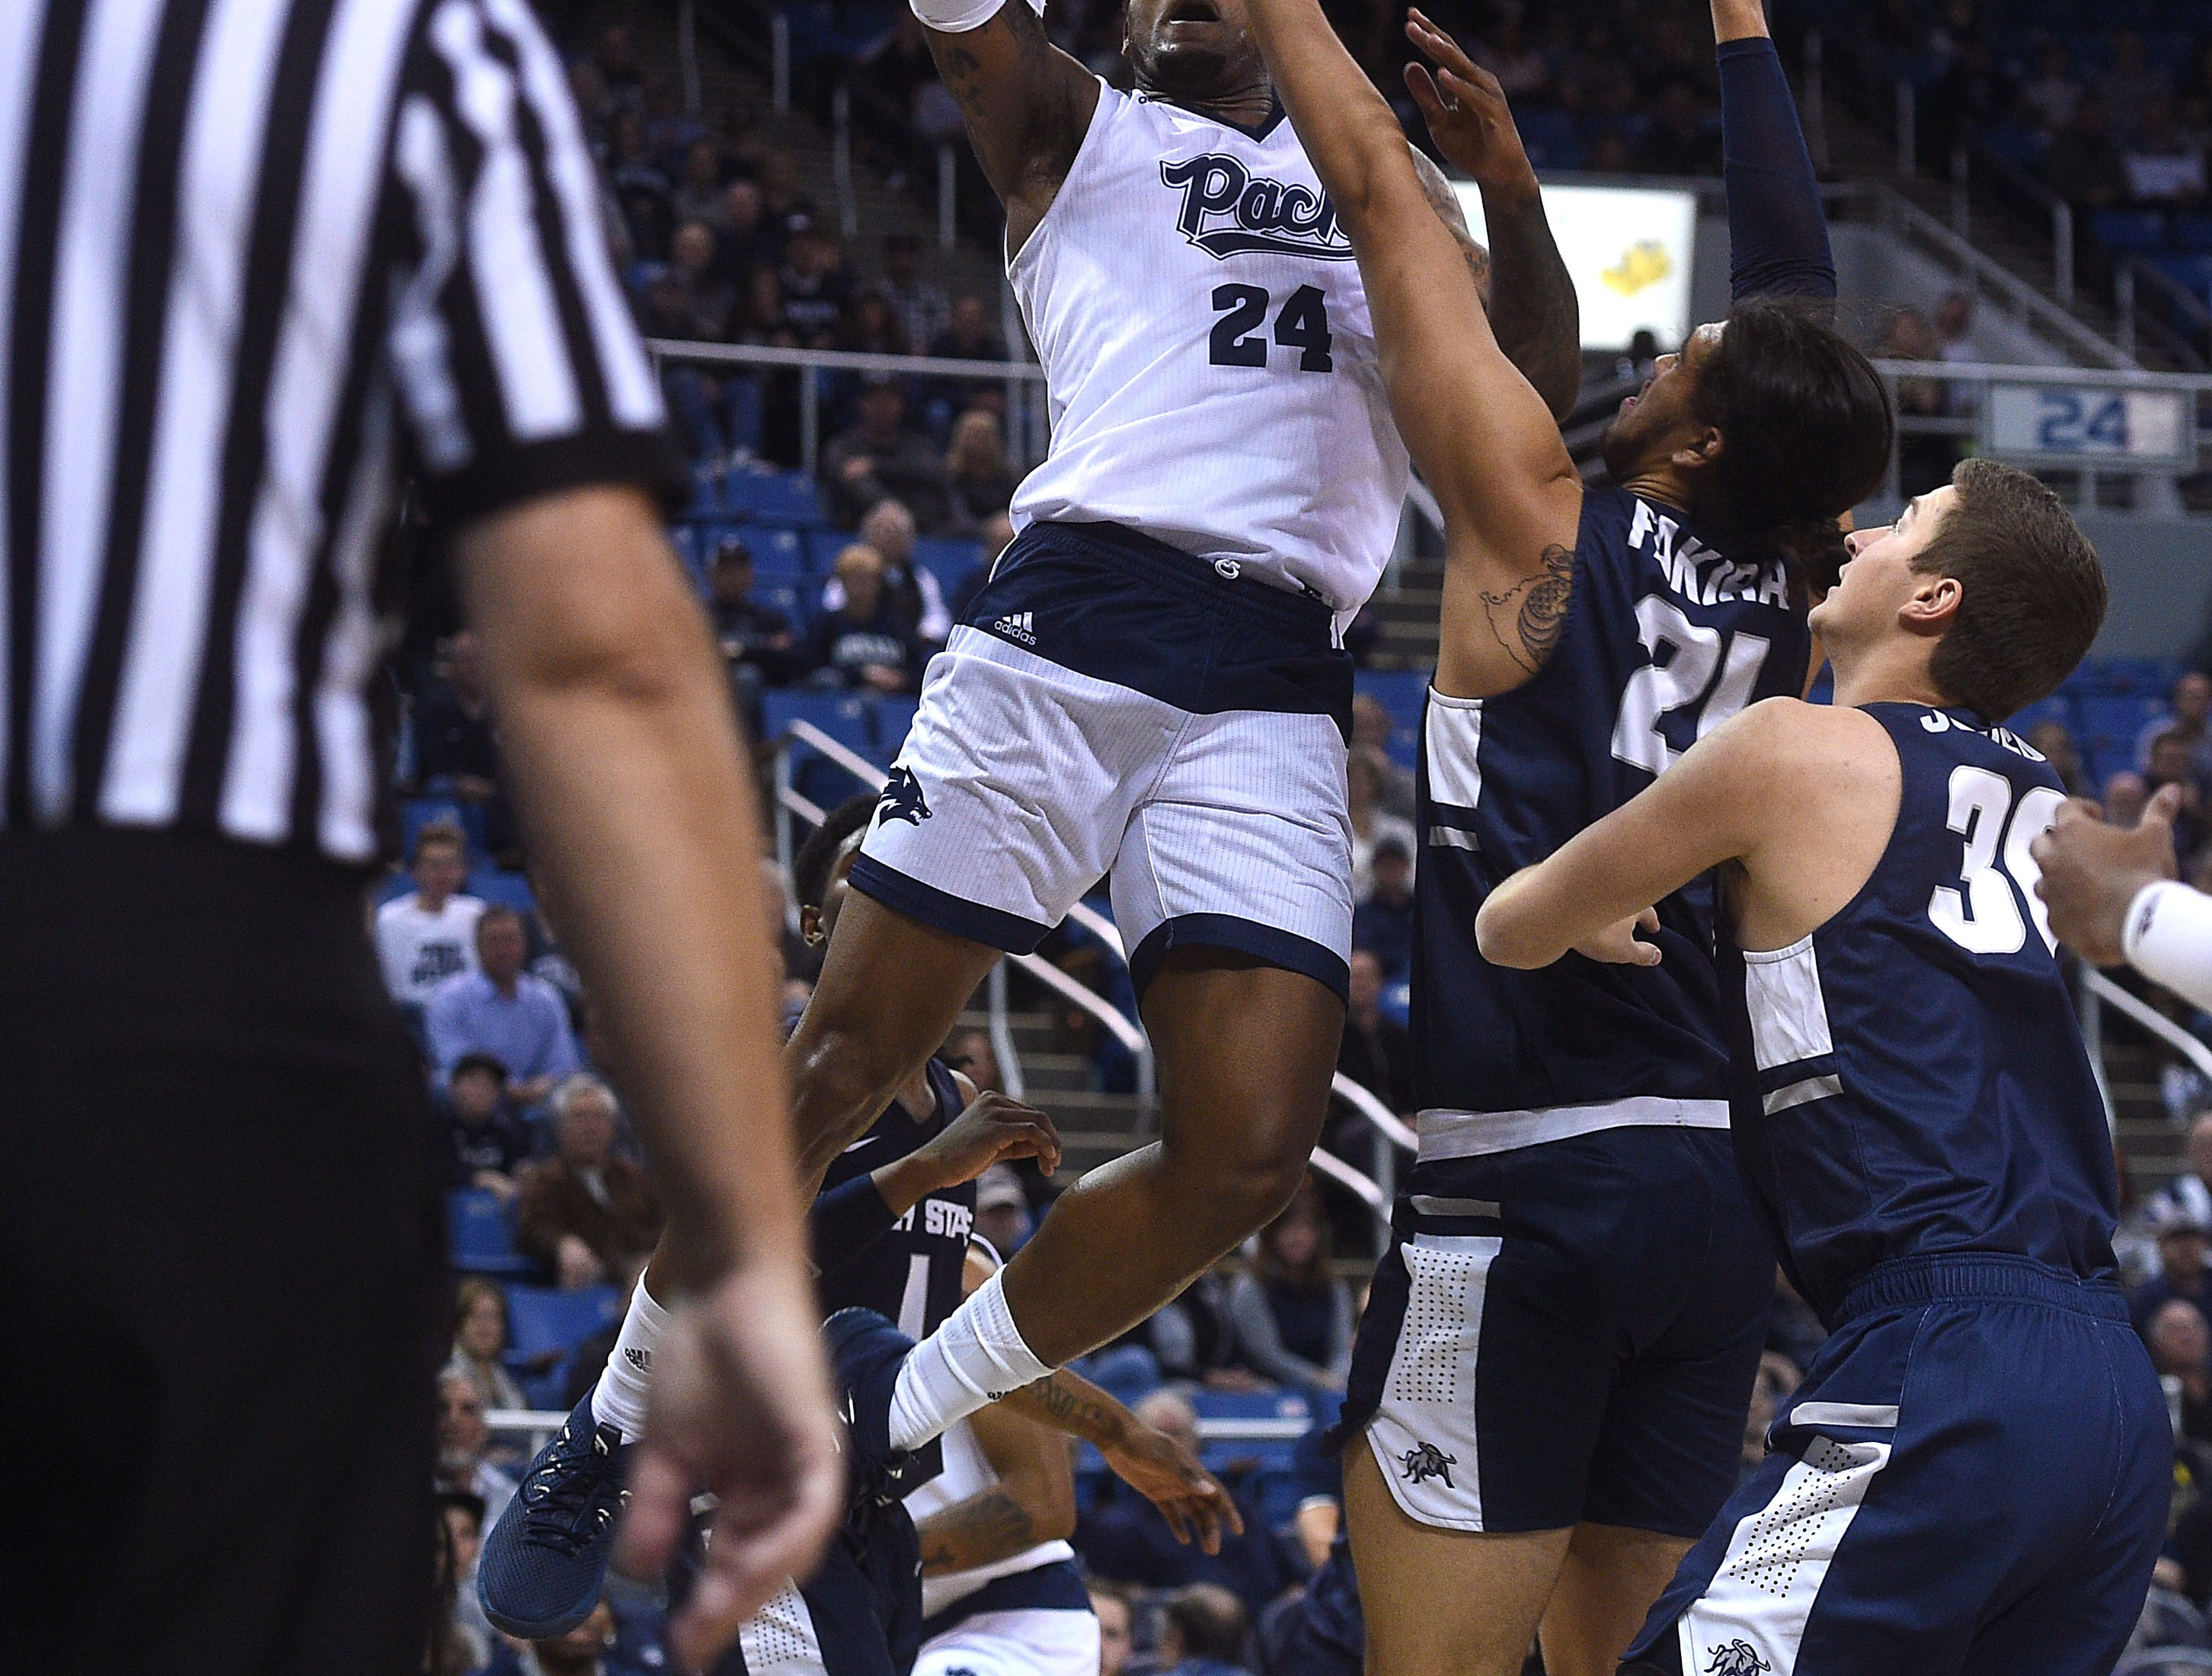 Nevada's Jordan Caroline drives to the basket while taking on Utah St. during their basketball game at Lawlor Events Center in Reno on Jan. 2, 2019.